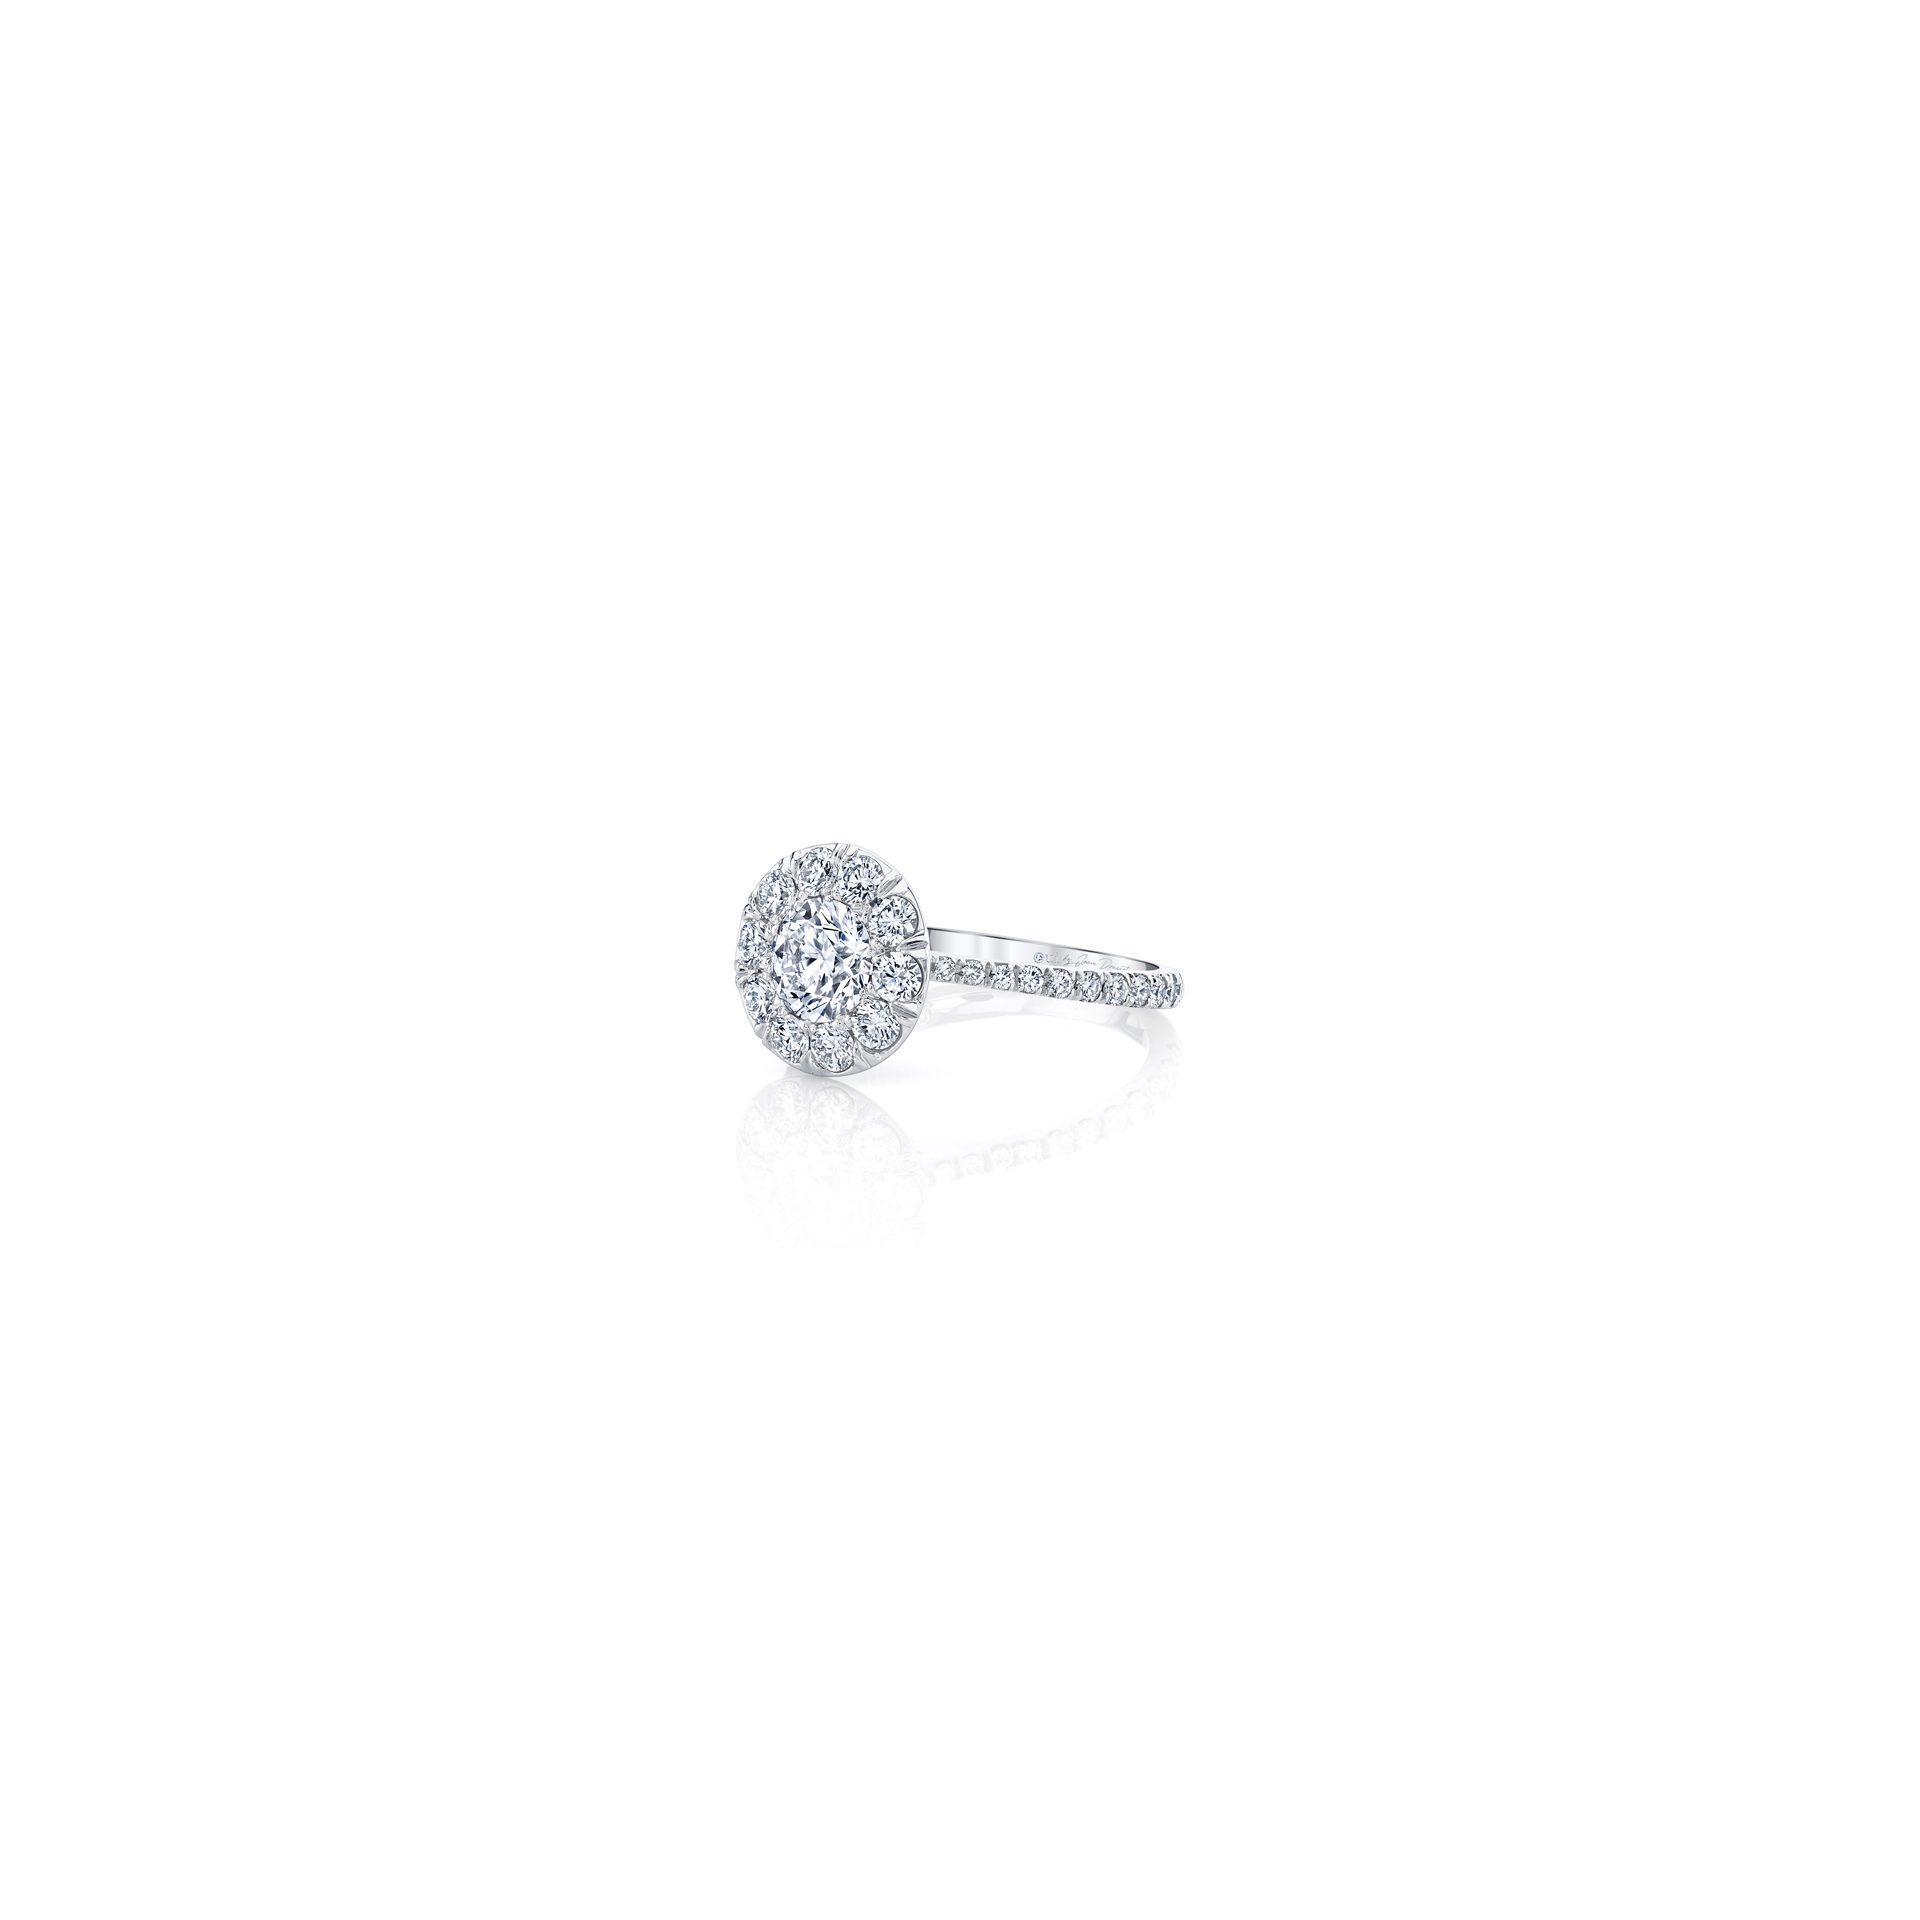 Eloise Round Brilliant Seamless Solitaire™ Engagement Ring with diamond pavé in 18k White Gold Side View by Oui by Jean Dousset